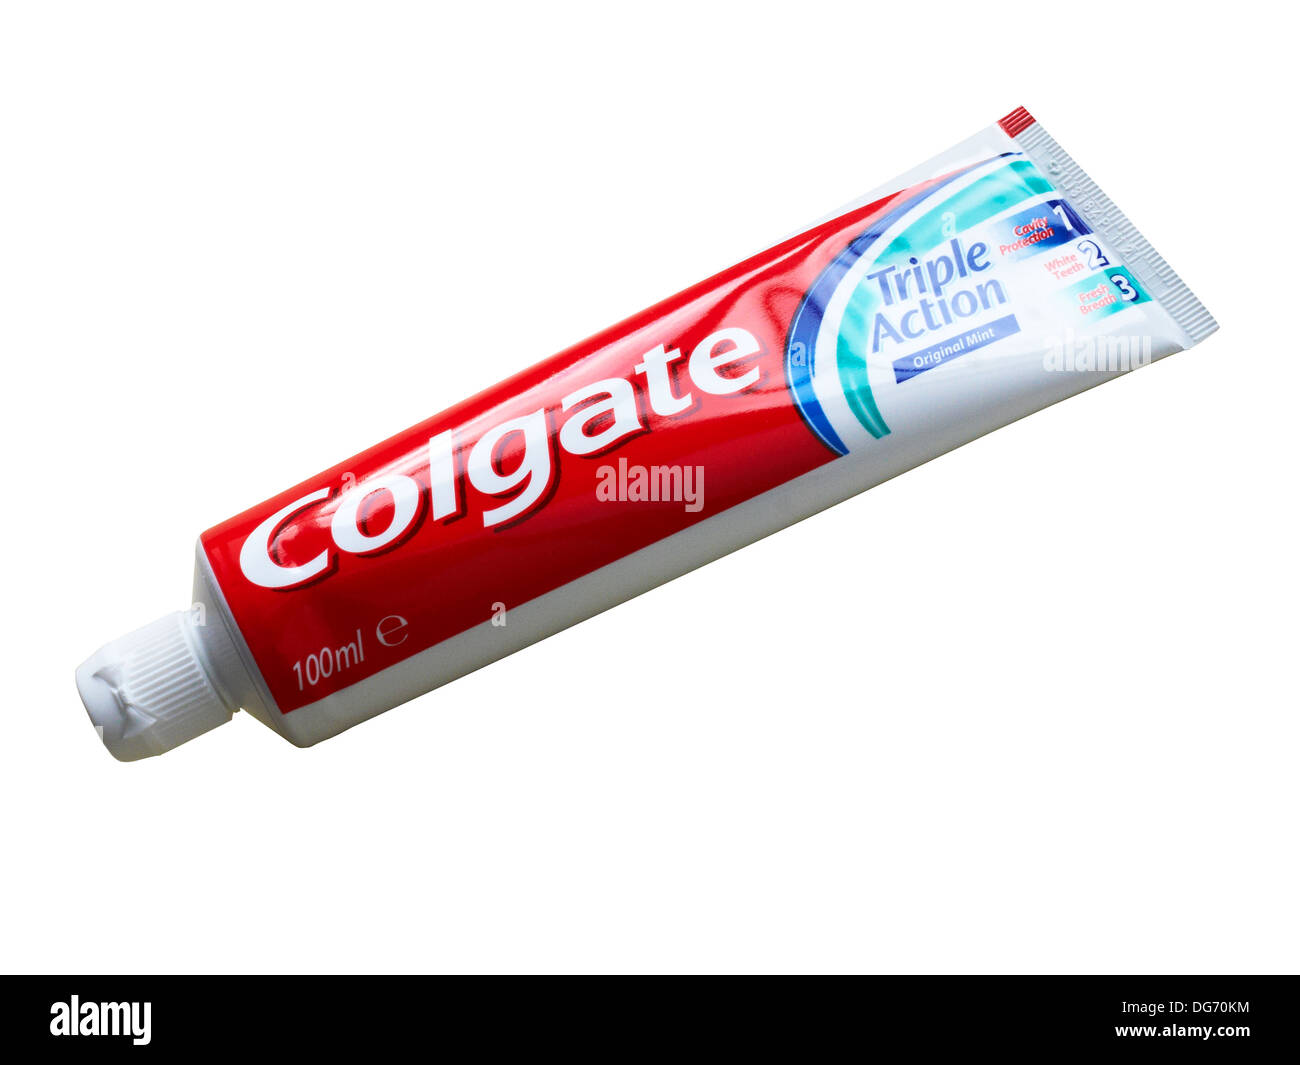 Hd Tube Tube Of Colgate Toothpaste Isolated On White Background